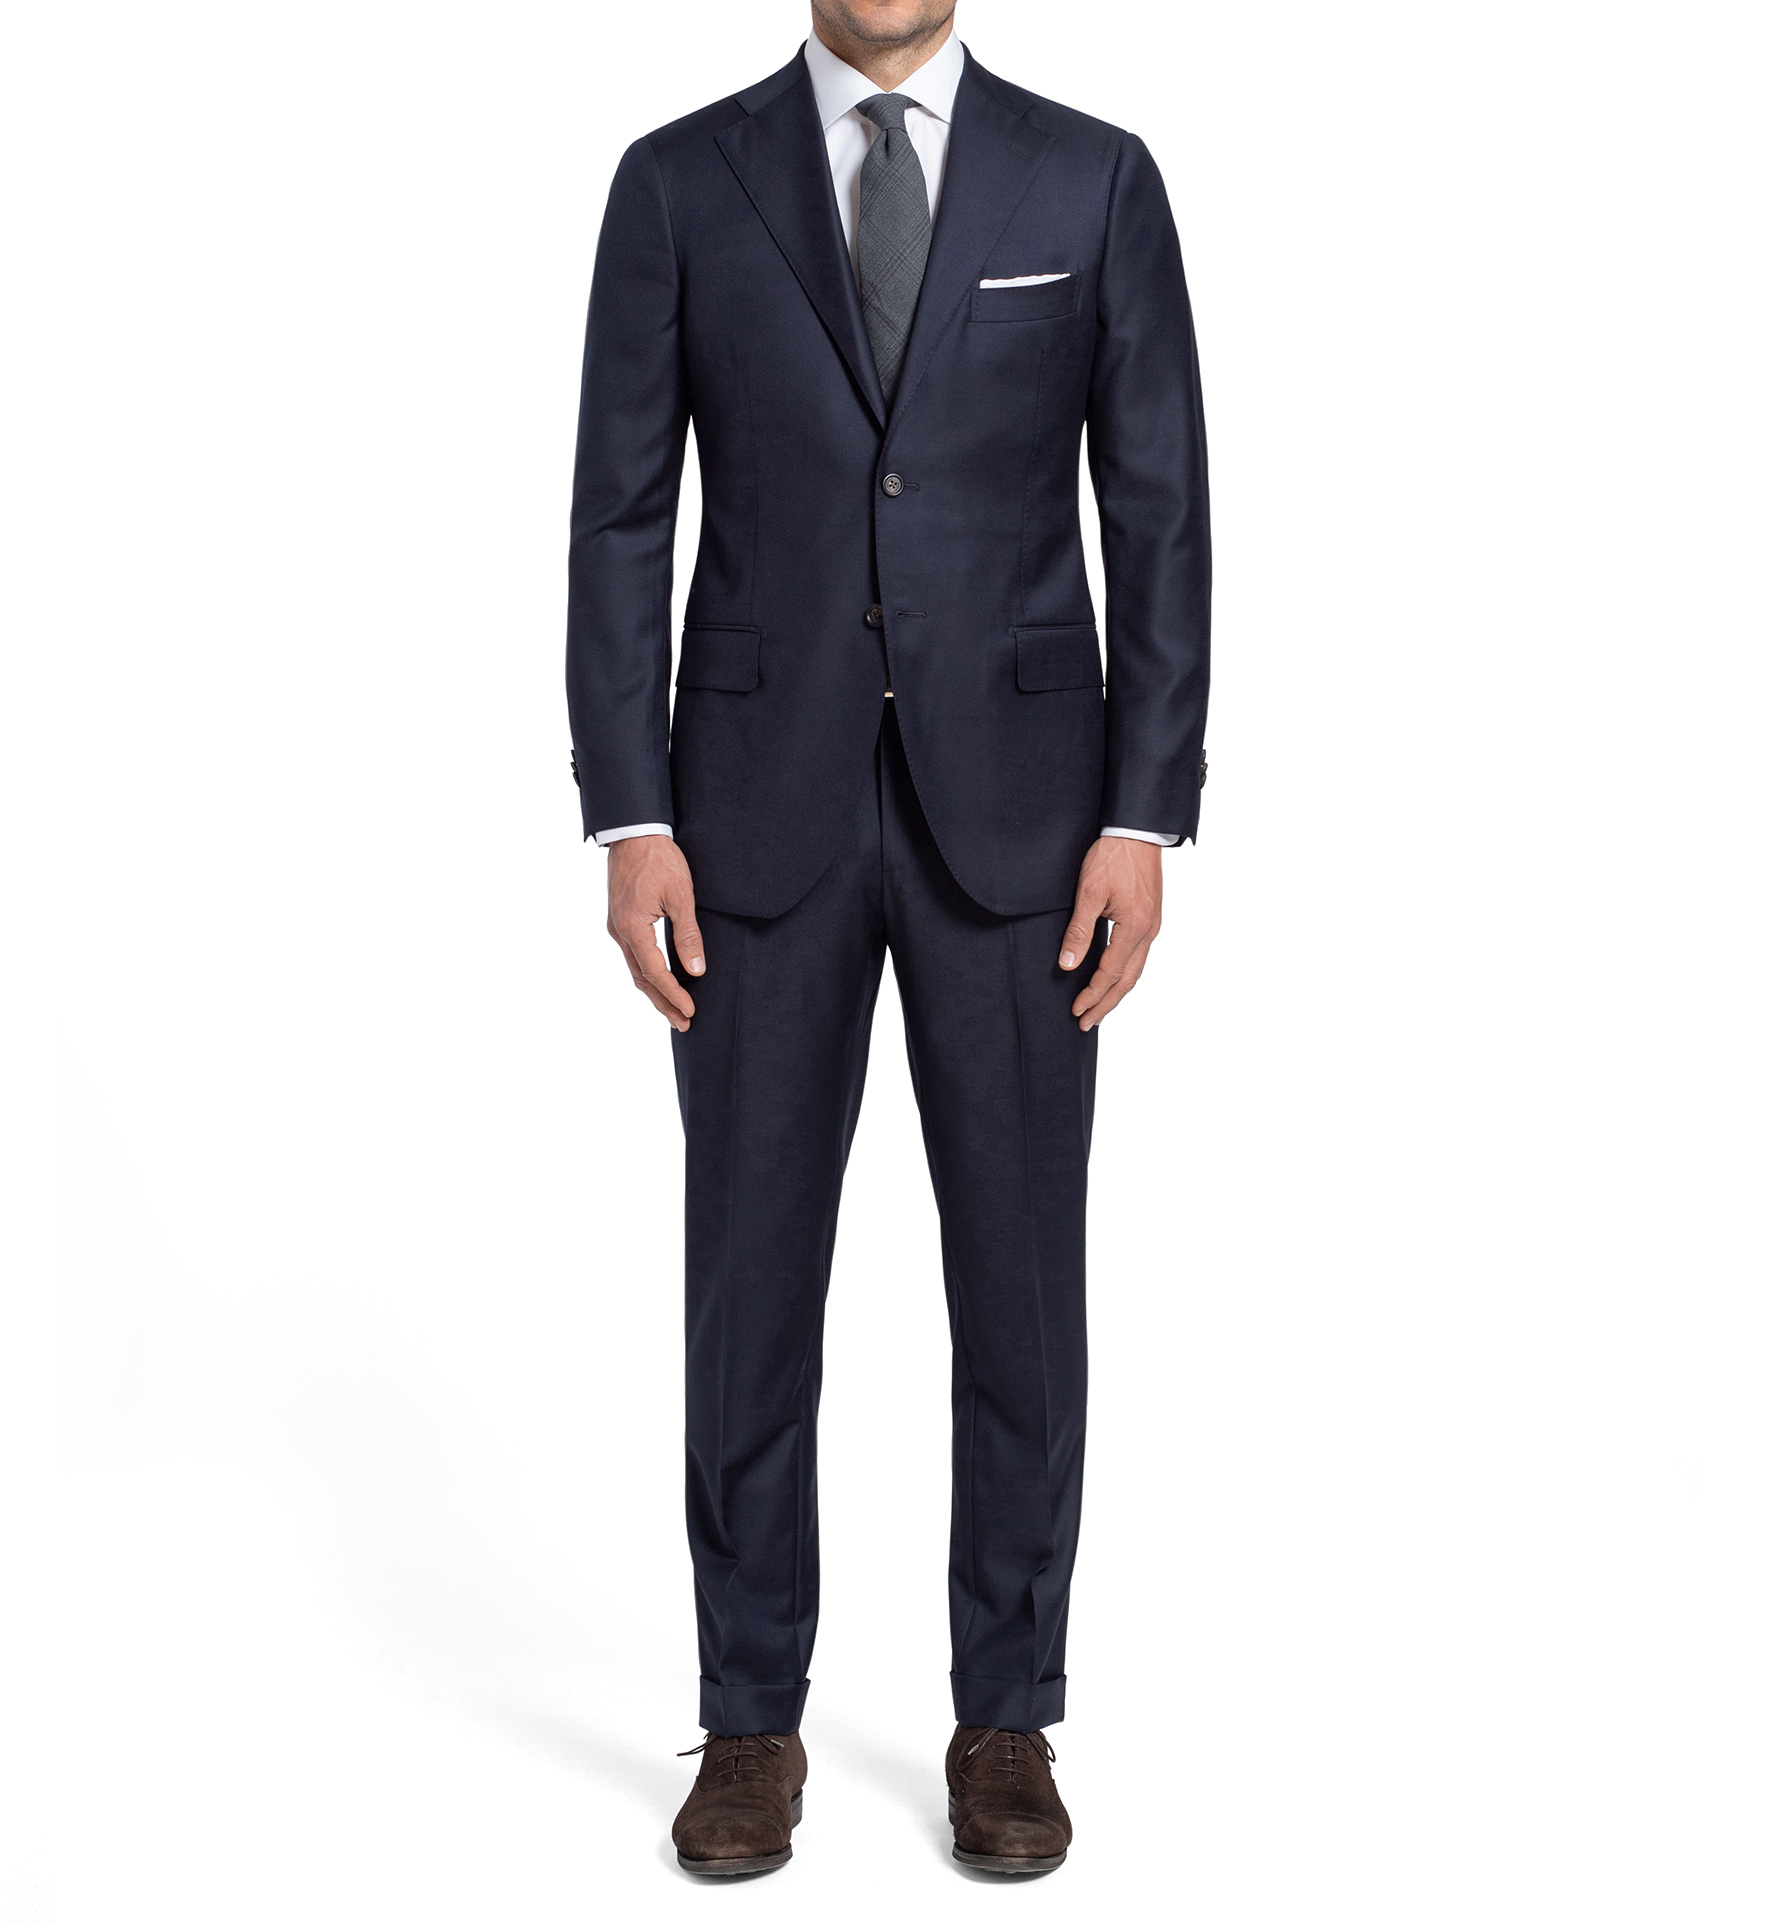 Zoom Image of Allen Navy S110s Wool Suit with Cuffed Trouser